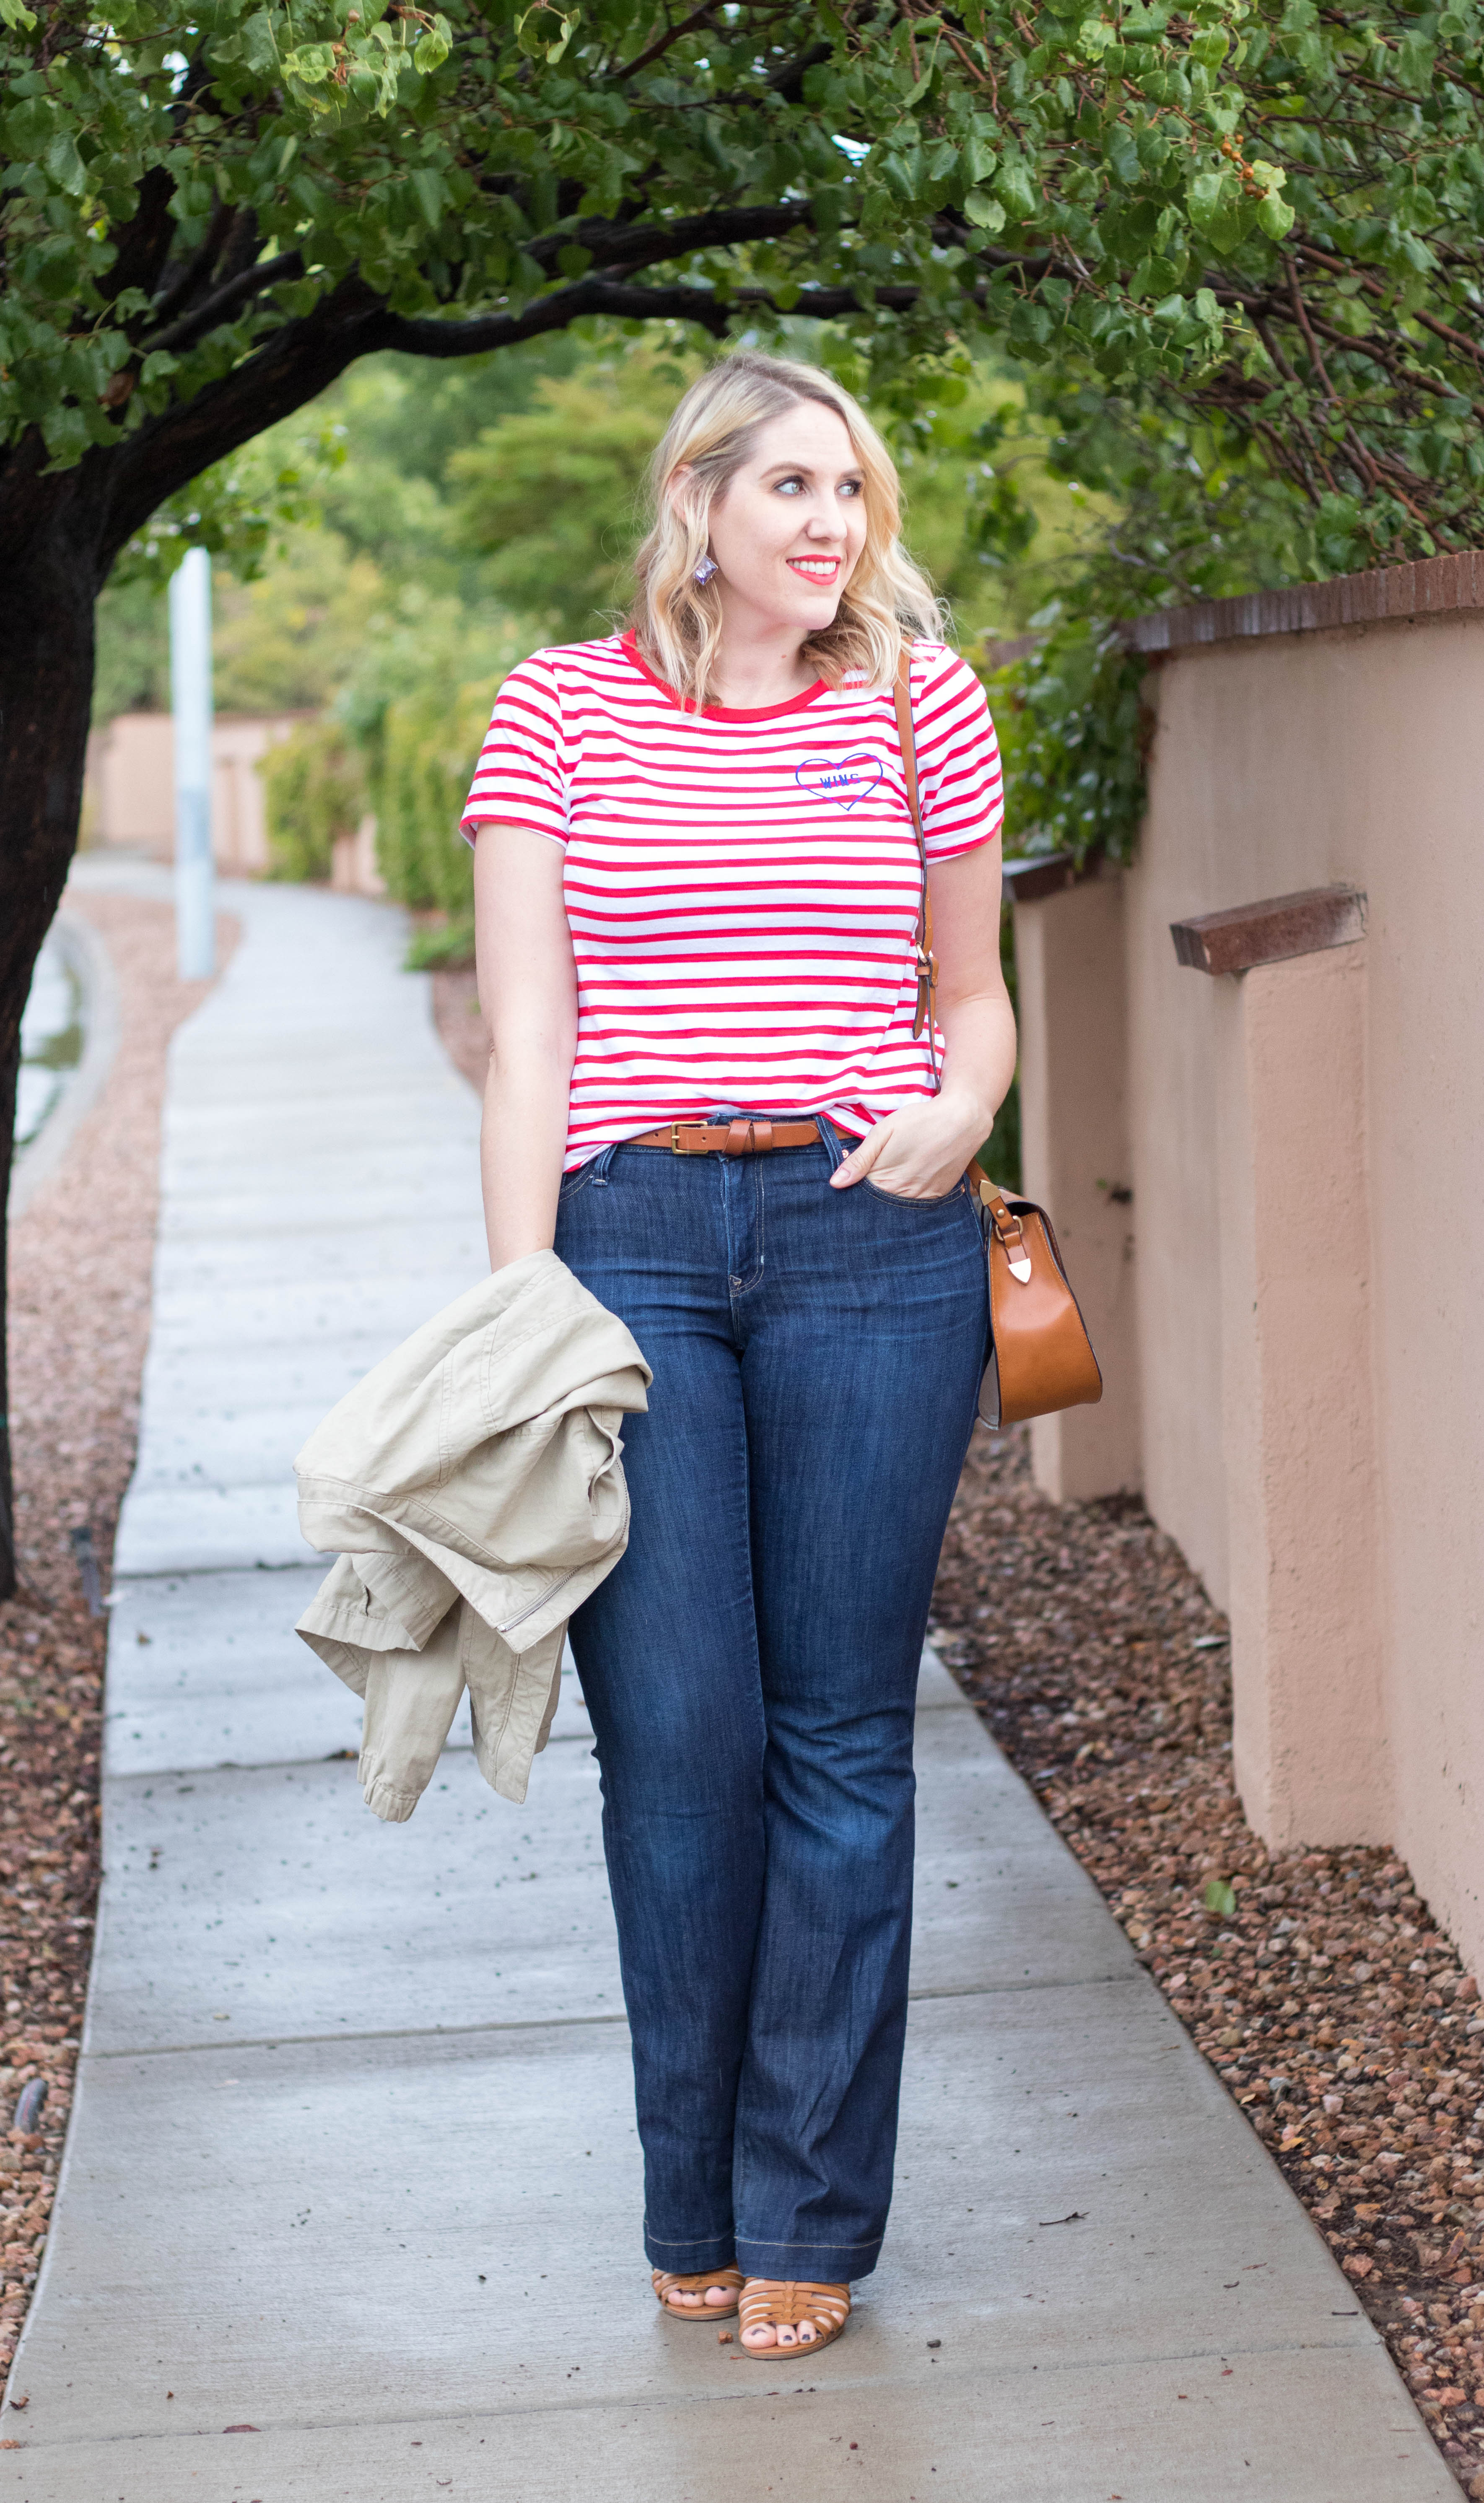 graphic tee for fall #theweeklystyleedit #fallstyle #graphictee #flarejeans